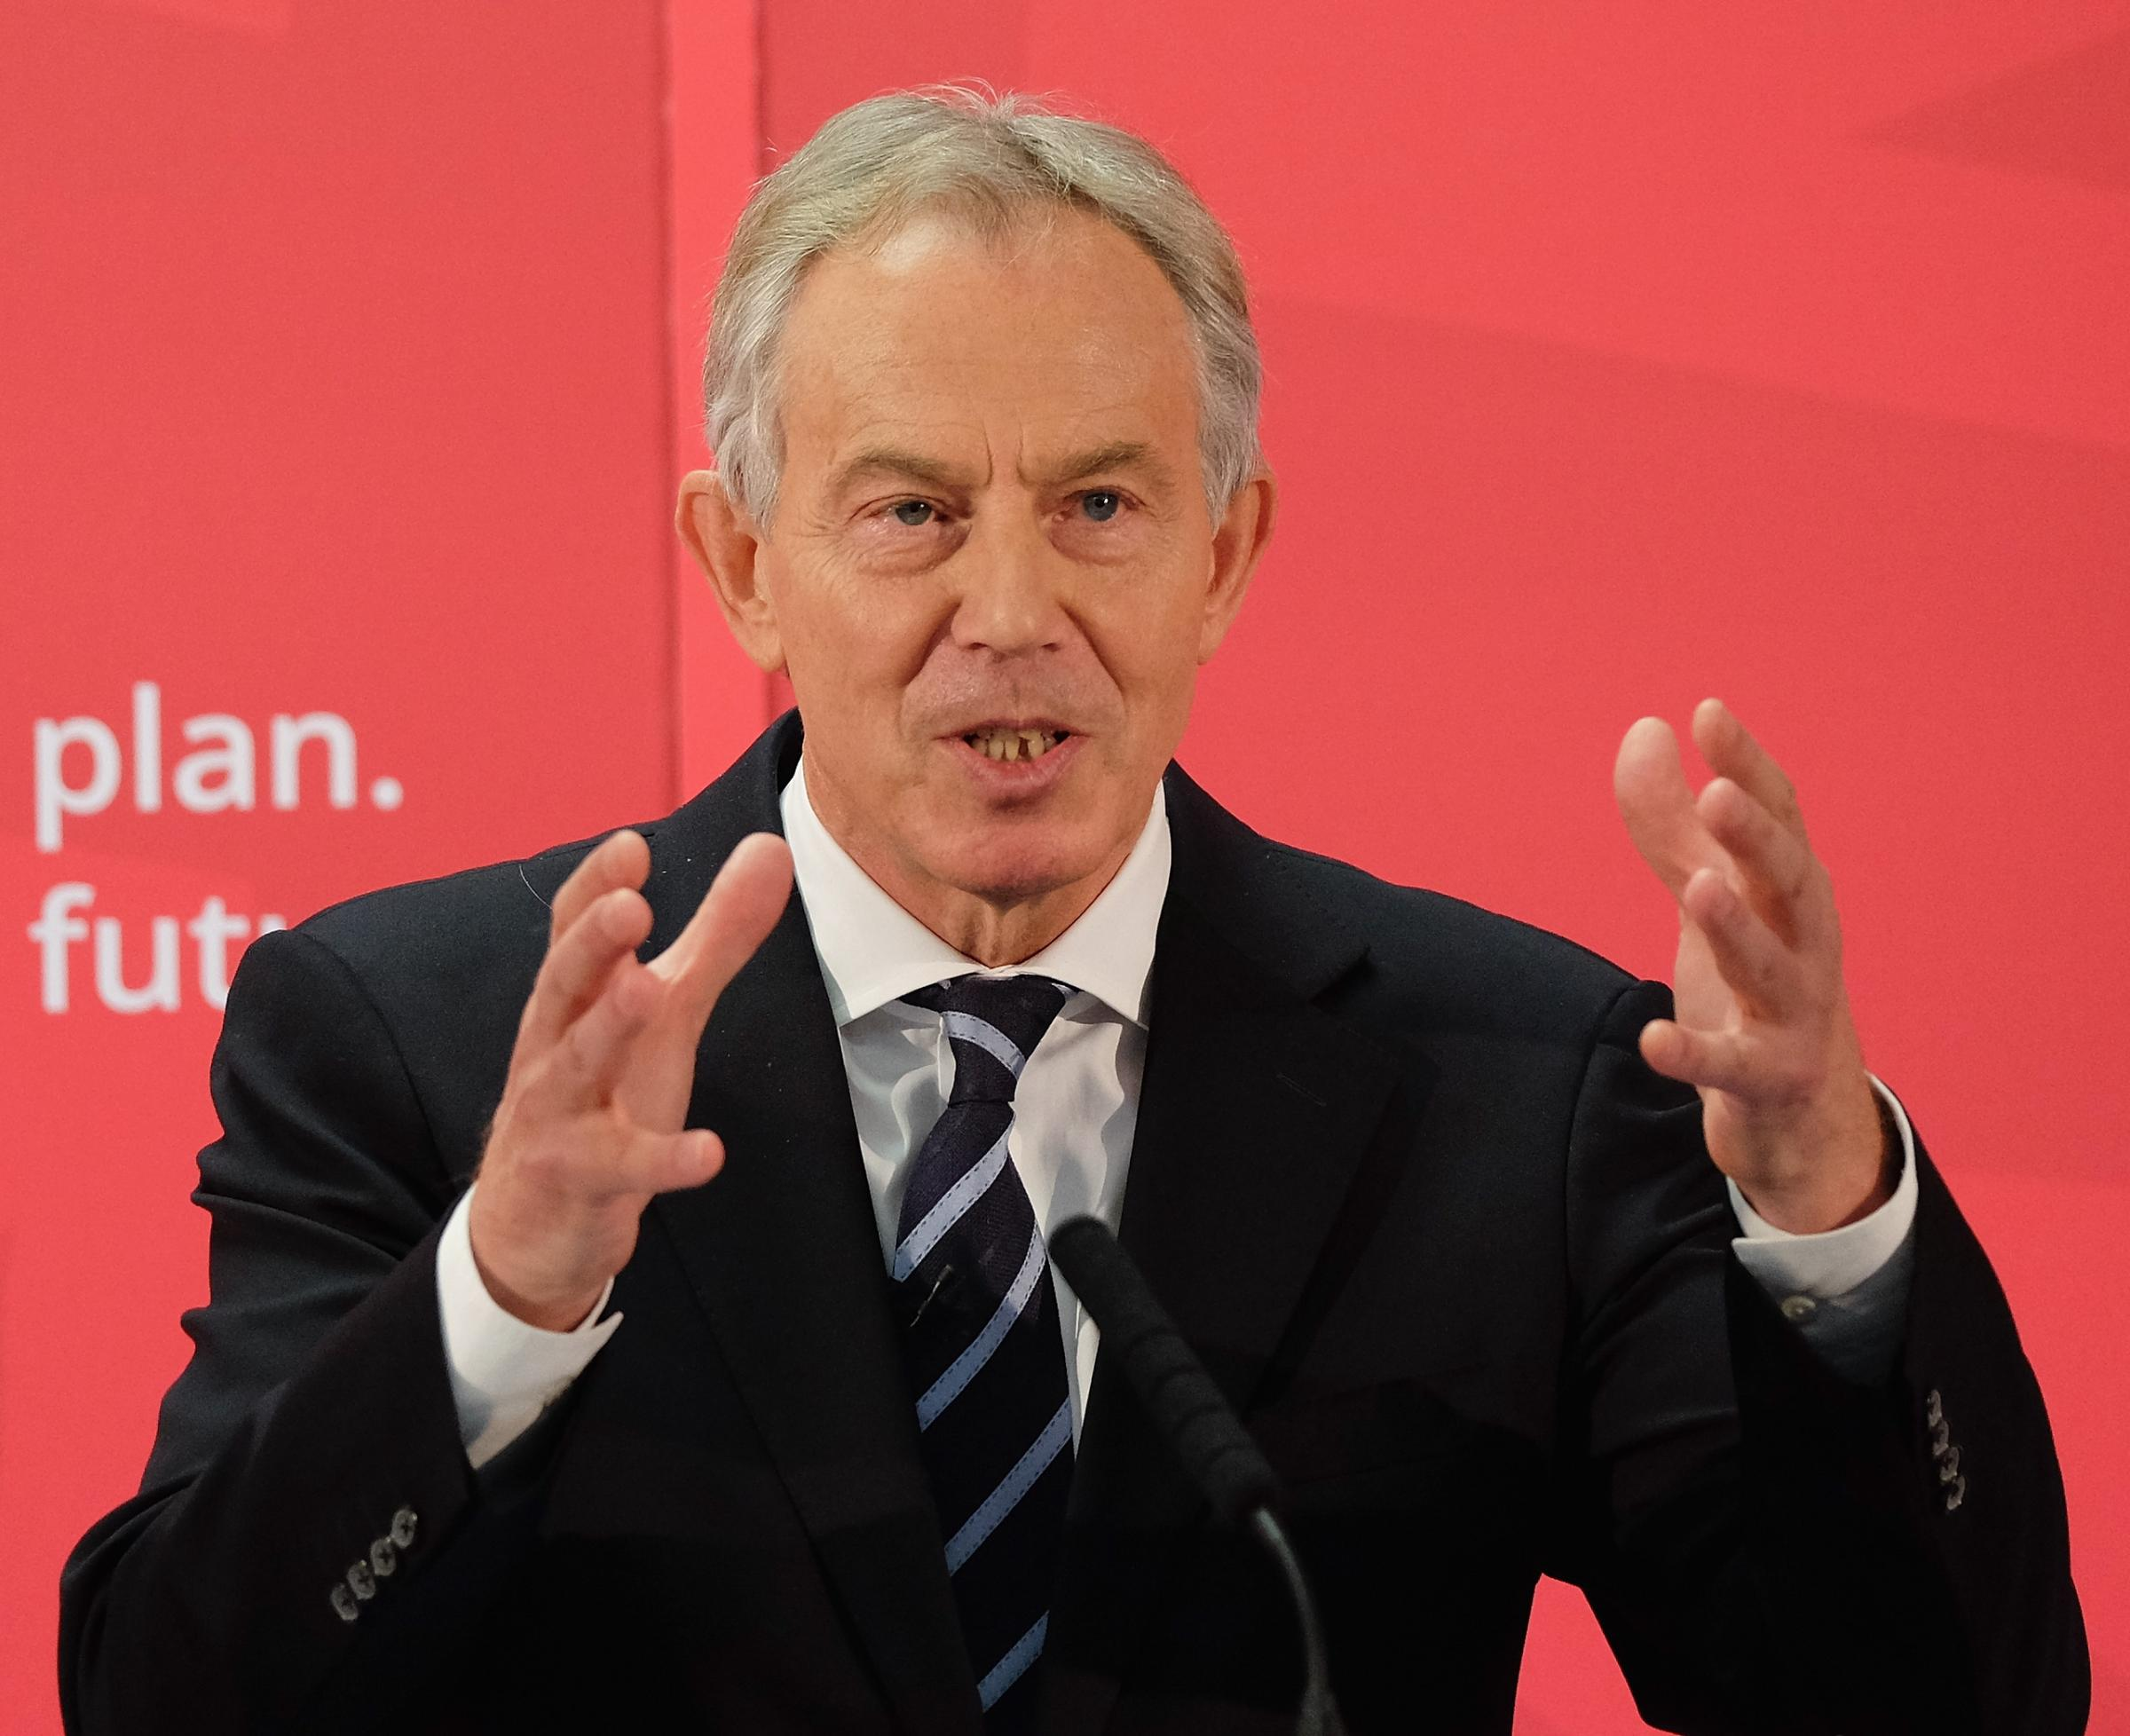 Tony Blair also took a swipe at the current Labour leader